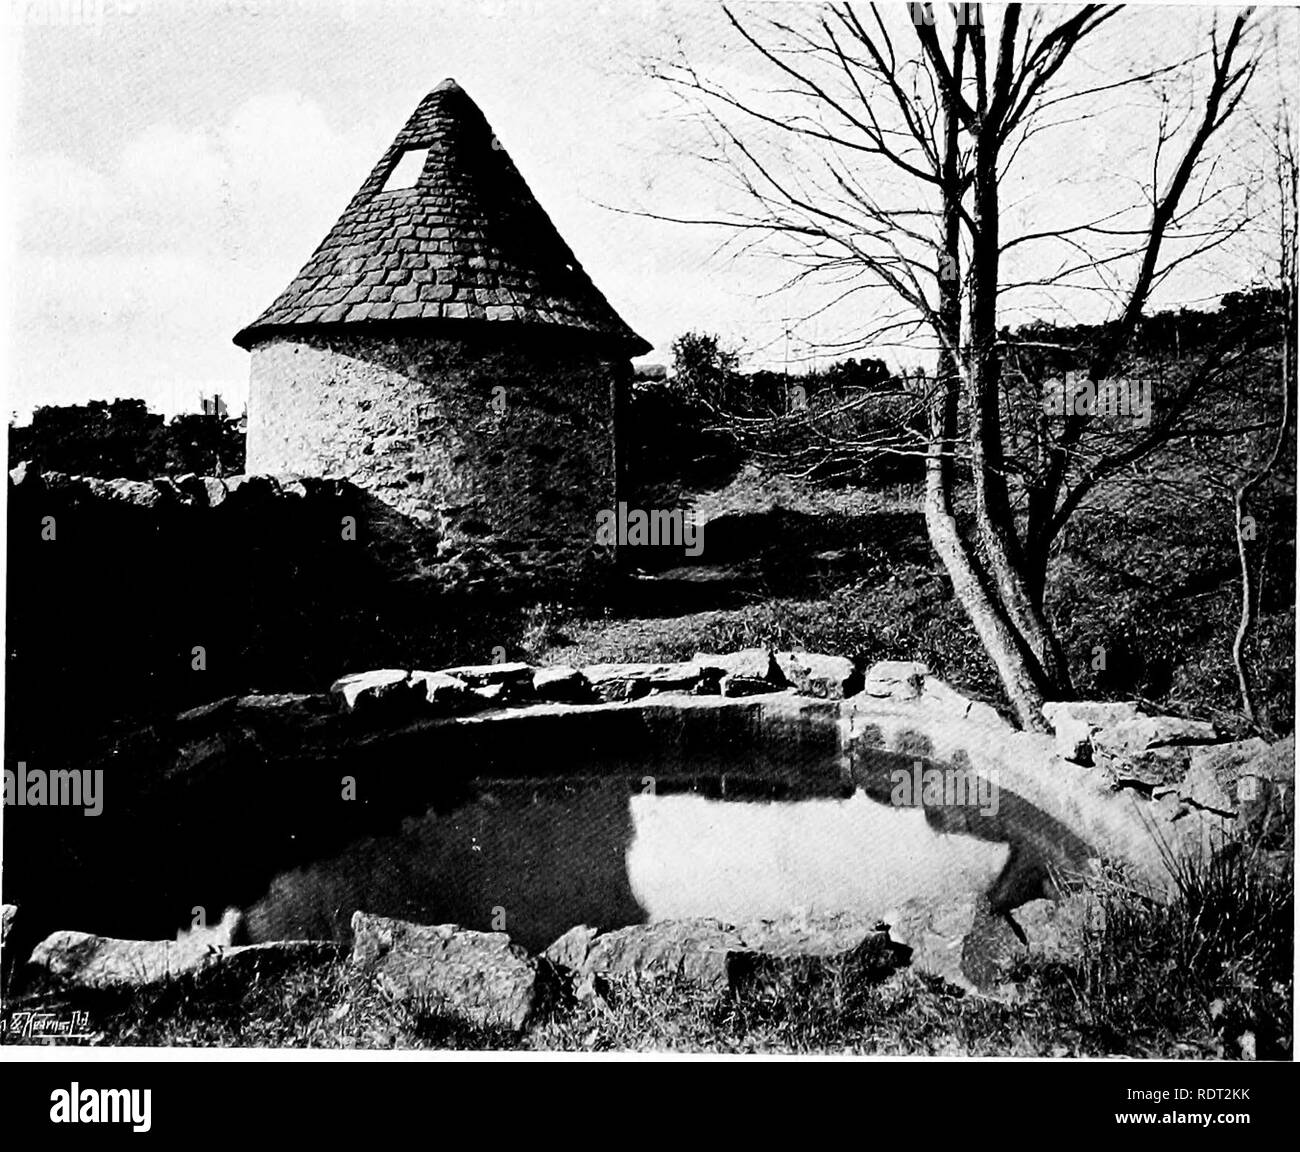 """. Gardens for small country houses . Gardens, English. FIG. 231.—AT KELSALE MANOR.. FIG. 232. —BATHING POOL AT STONEYWELL COTTAGE. attractive thing. The modern example illustrated in Fig. 234 has a simple stone wa:ll and coping with a wrought-iron """" overthrow """" of neat design. Most people, however, who are set on possessing a well- head look for an old one. There seems no end to the stream of them, old or """" antique,"""" which does not necessarily mean the same thing in these days of skilful! reproduction. They come, or are said to come, from Italian courtyards and gardens, som - Stock Image"""